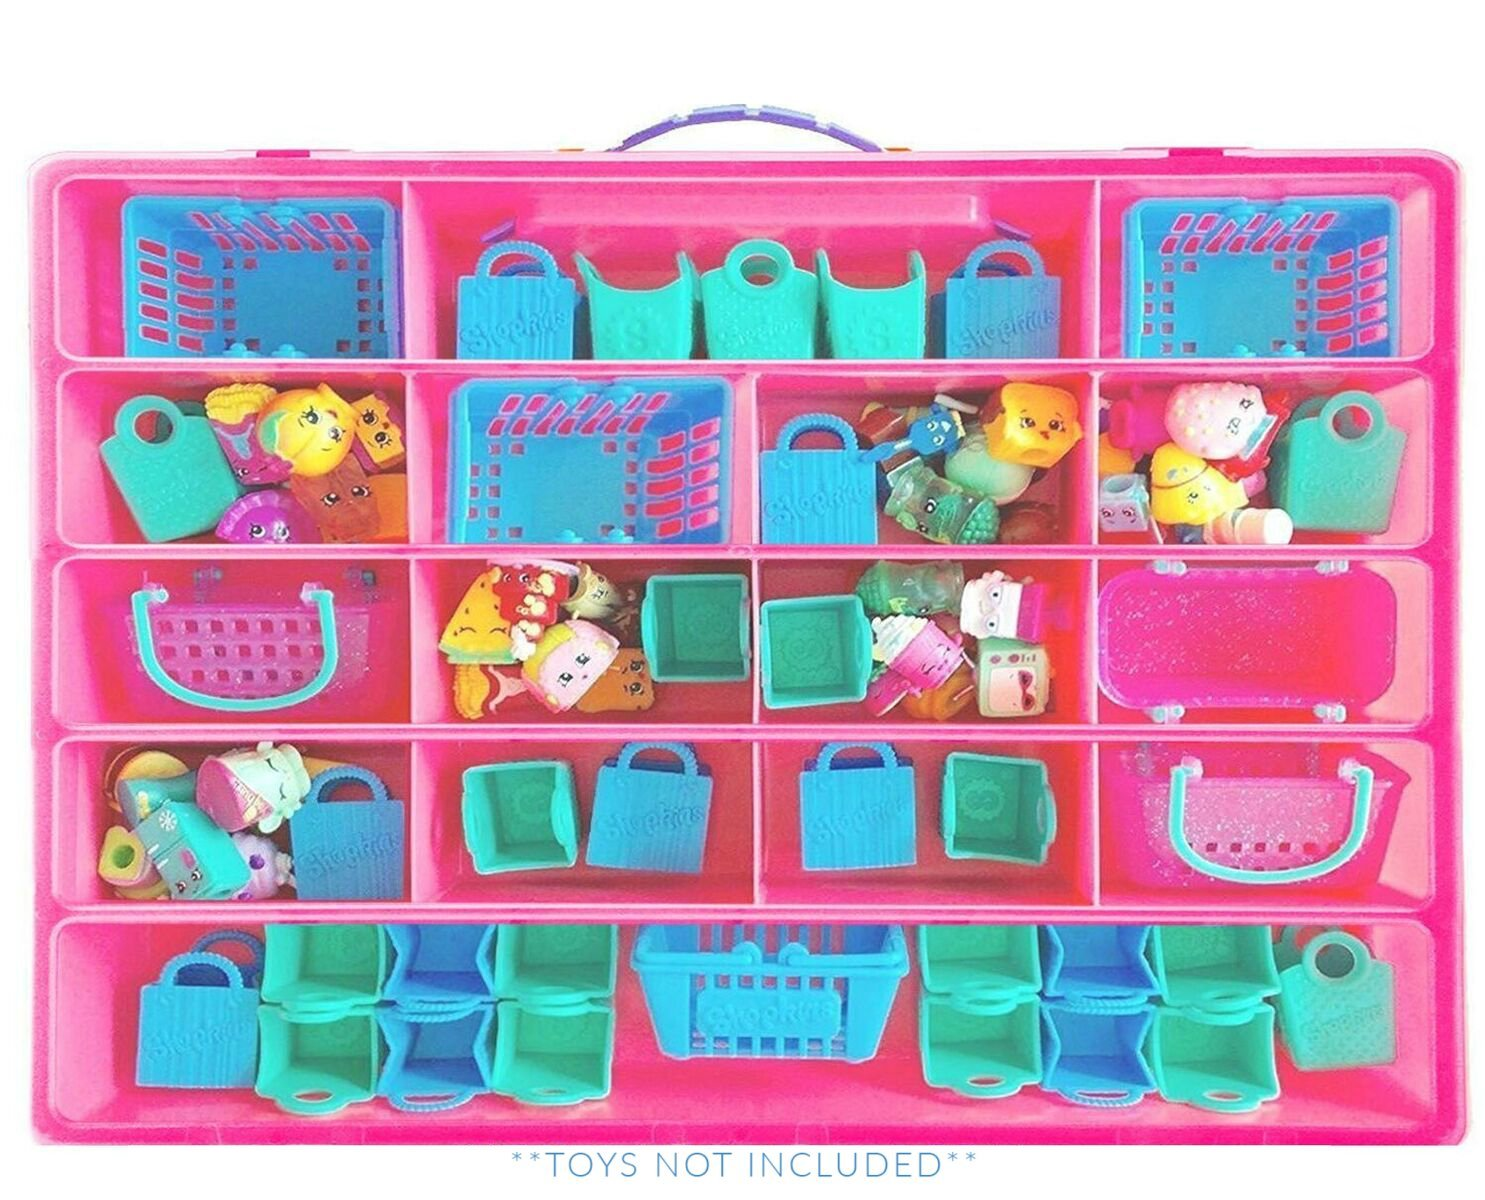 Littlest Pet Shop Case, Toy Storage Carrying Box. Figures Playset Organizer. Accessories For Kids by LMB Life Made Better LMB111